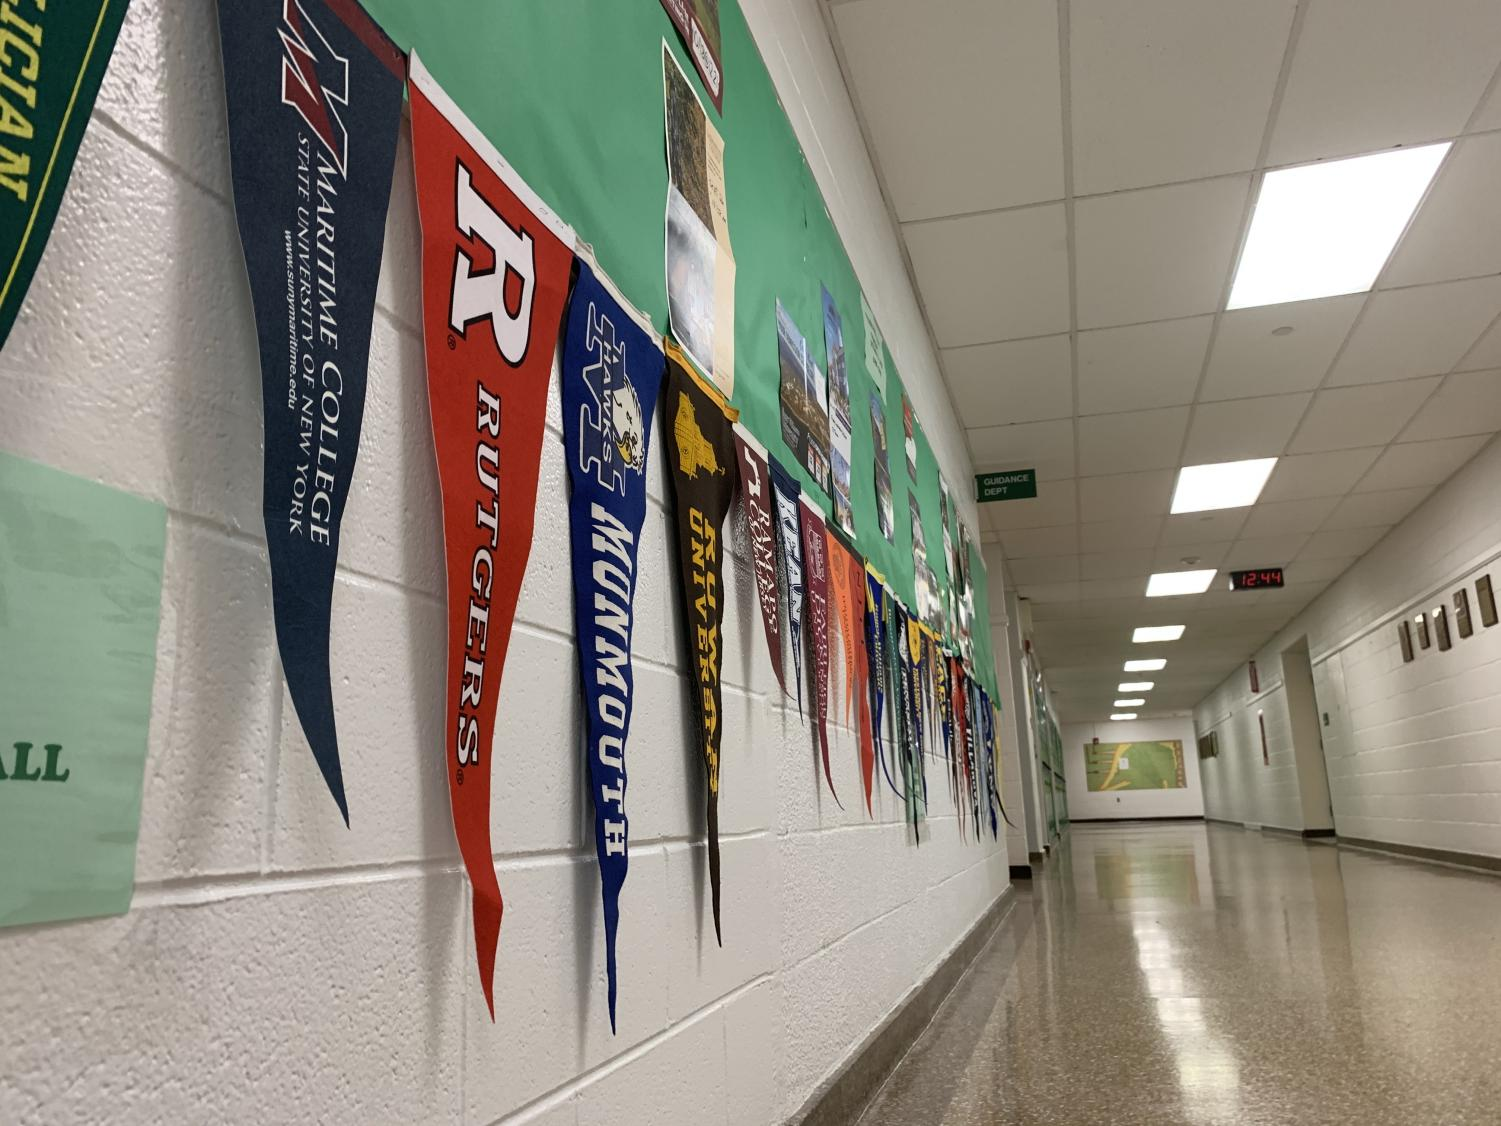 The Pascack Valley Regional High School District is hosting a college fair on Oct. 17. The event will be held from 6 p.m. to 9 p.m. in the old gymnasium and new gymnasium.